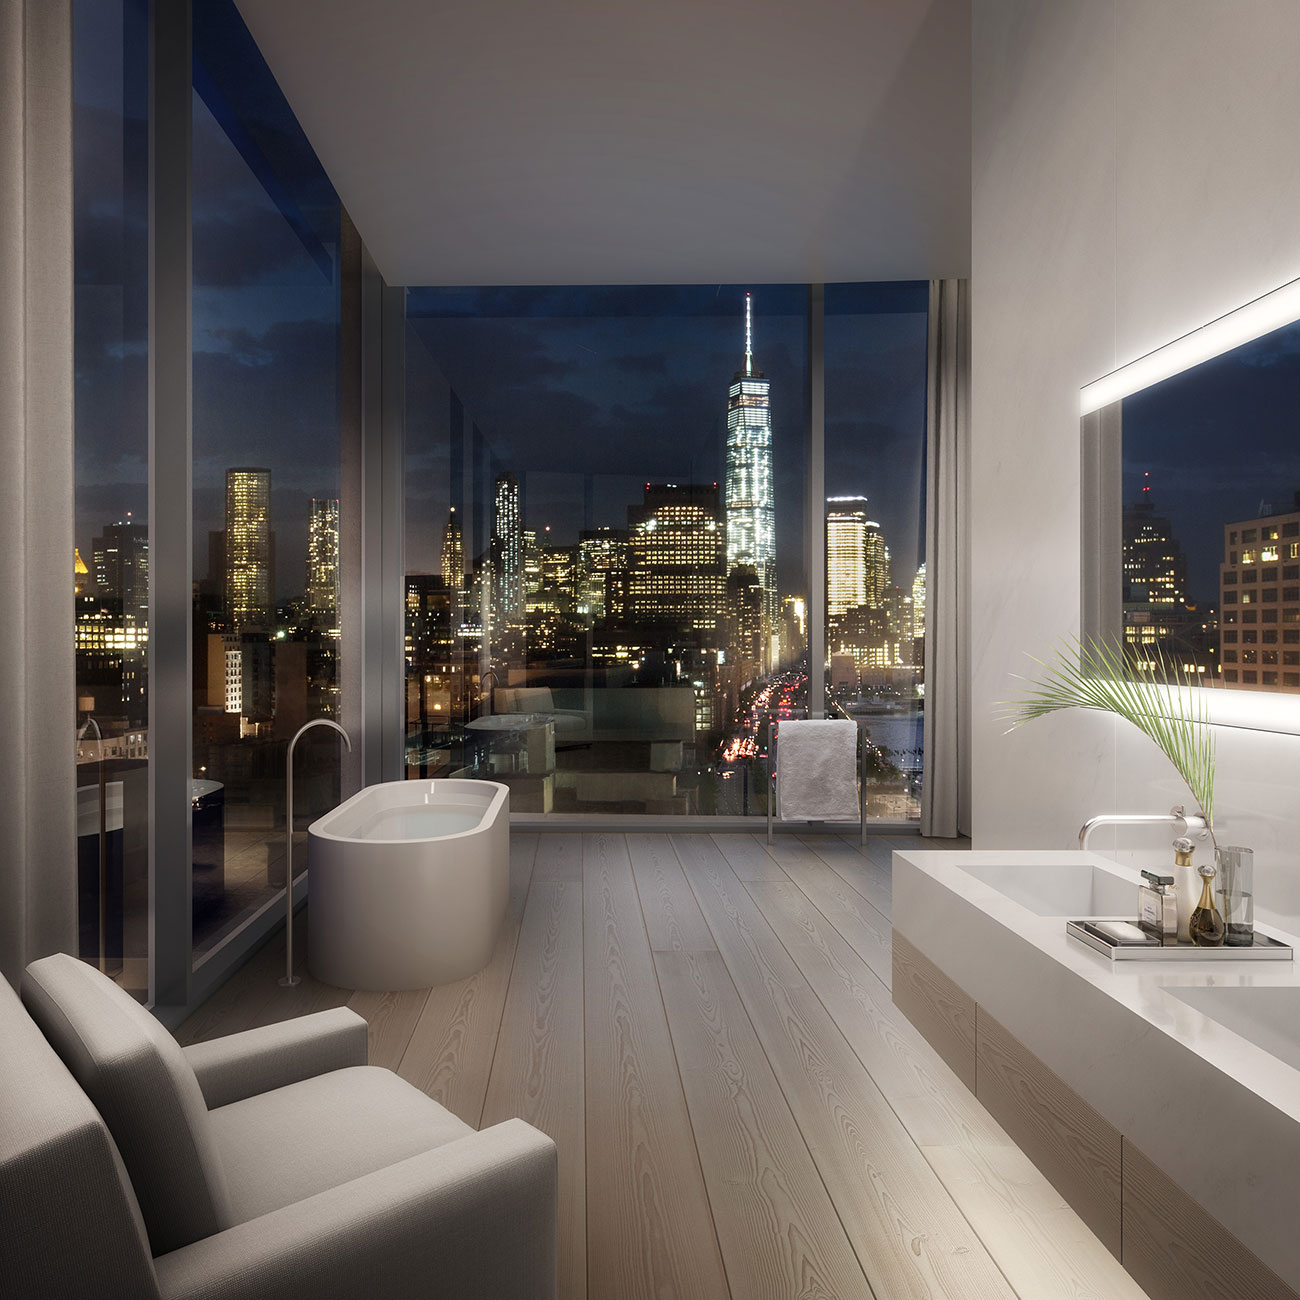 Bathrom At Night With City View.